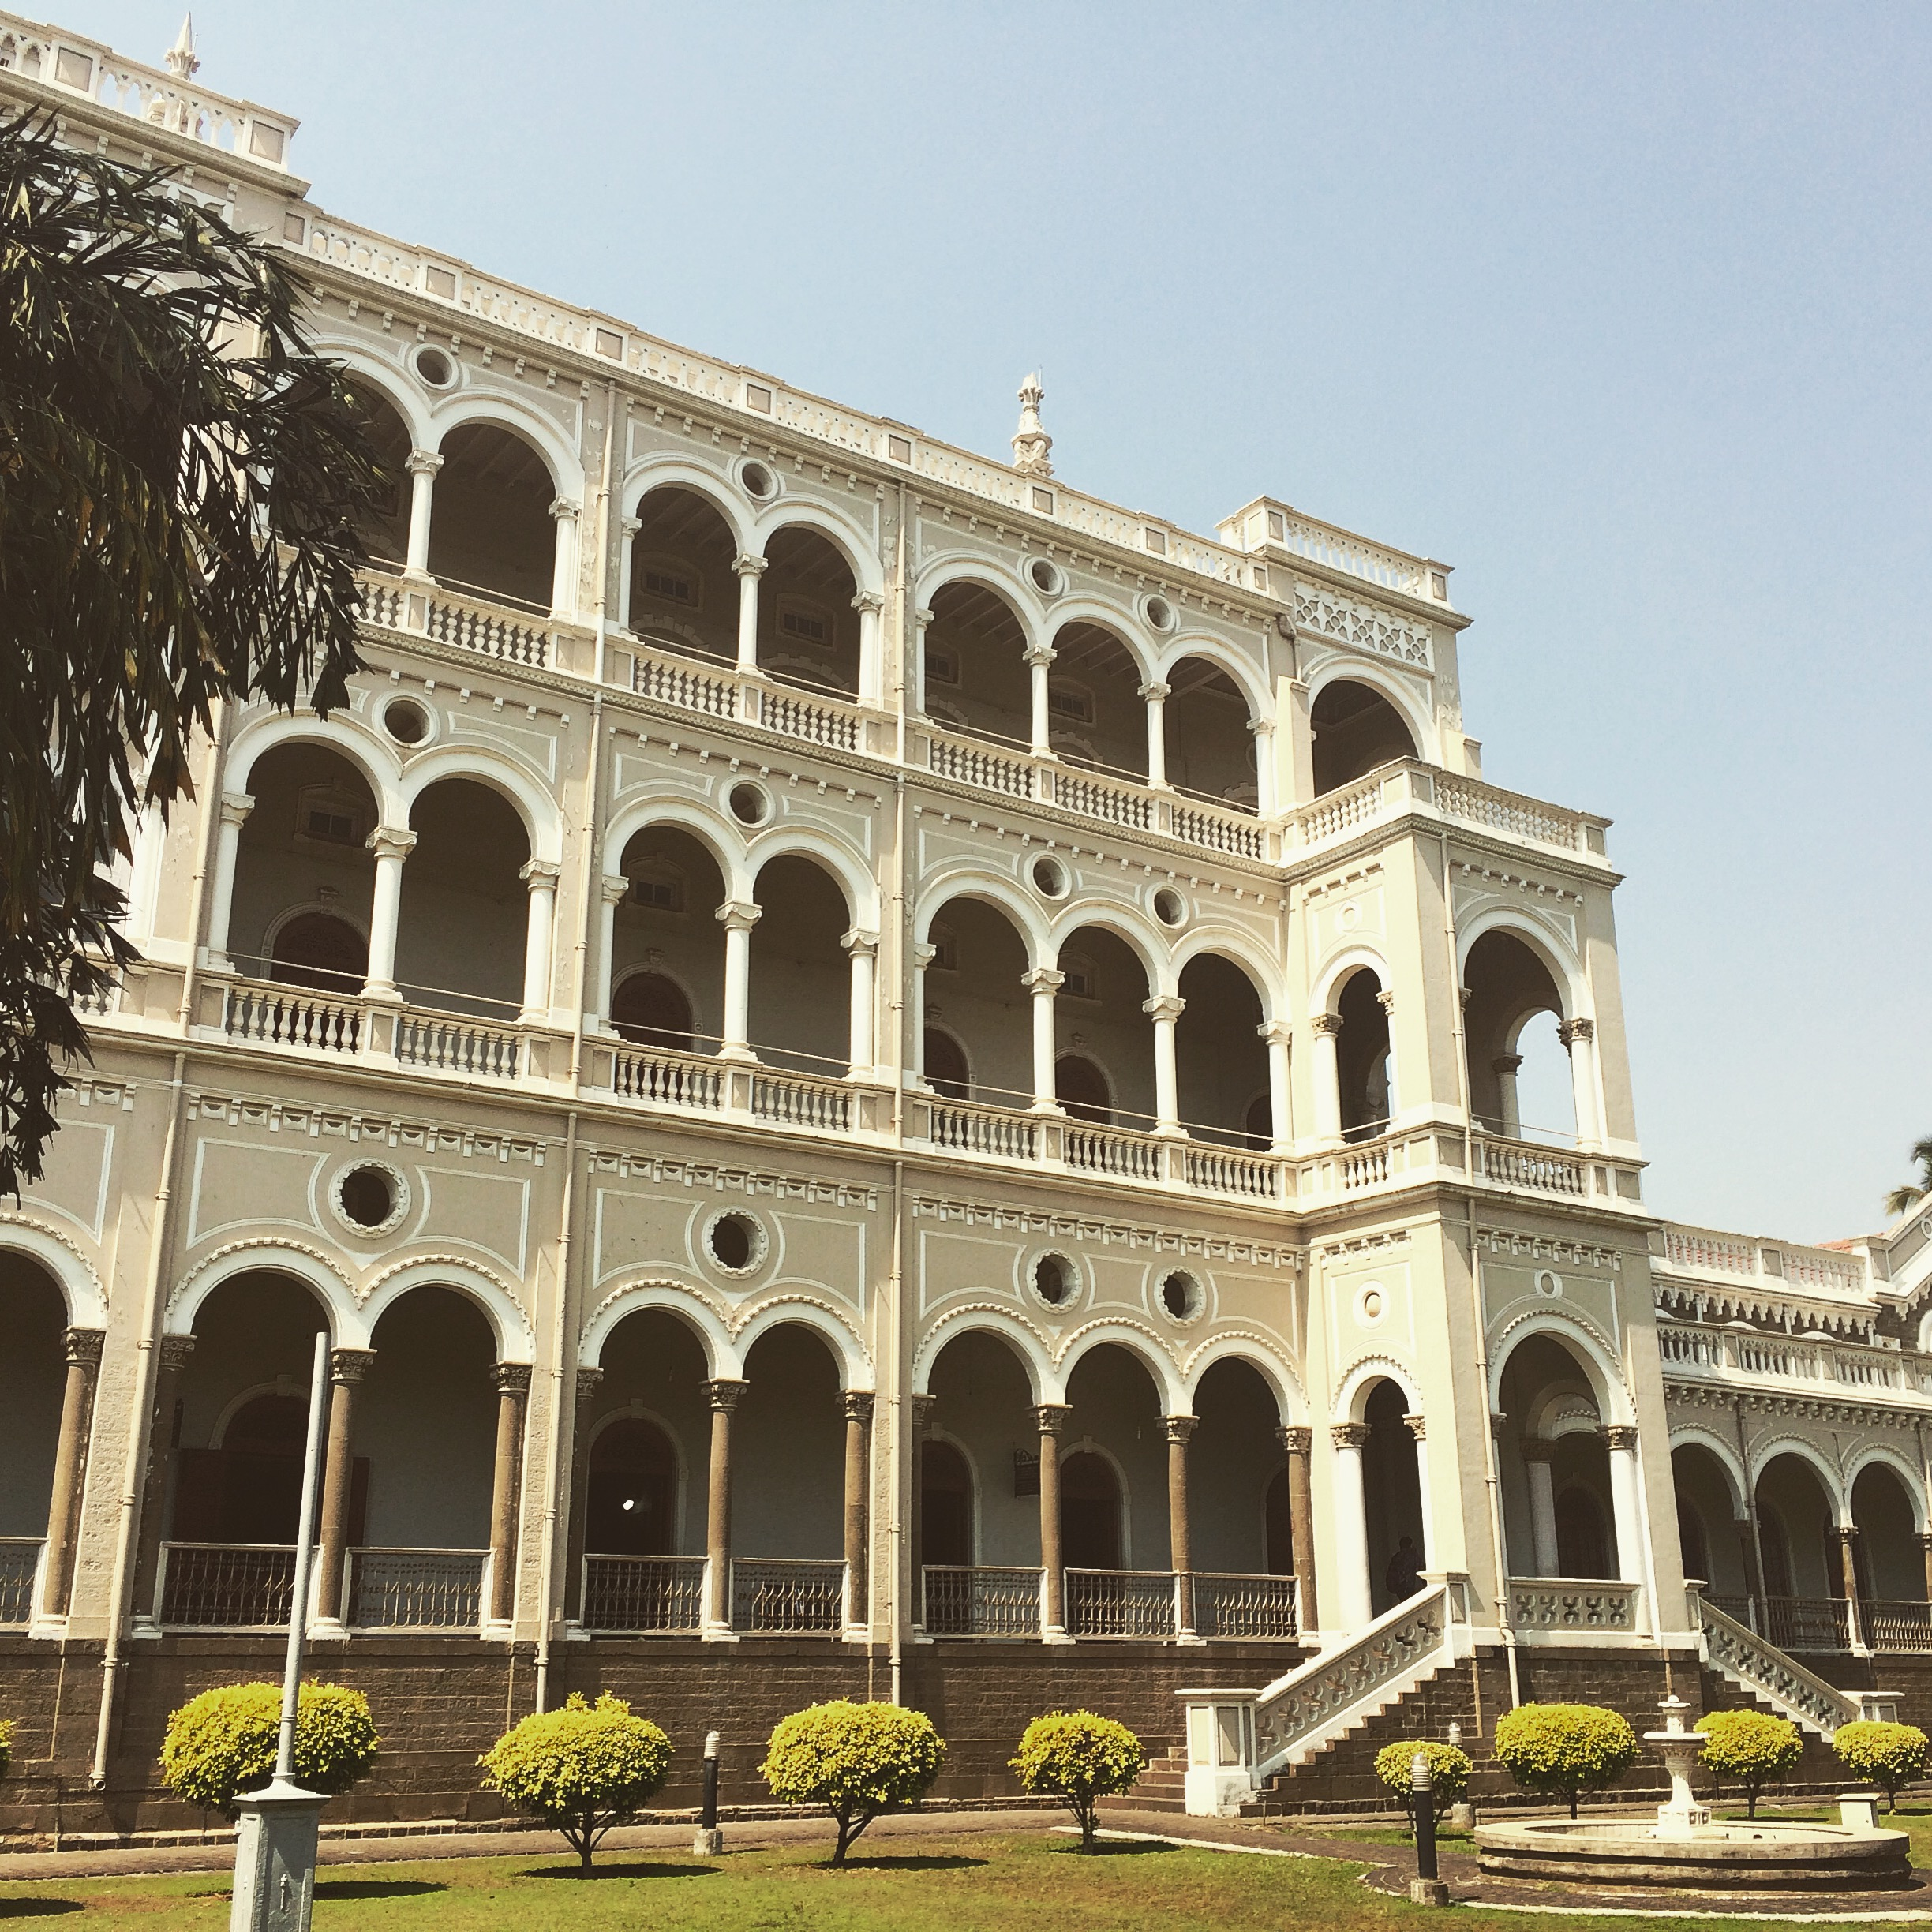 Aga Khan Palace, Pune, India